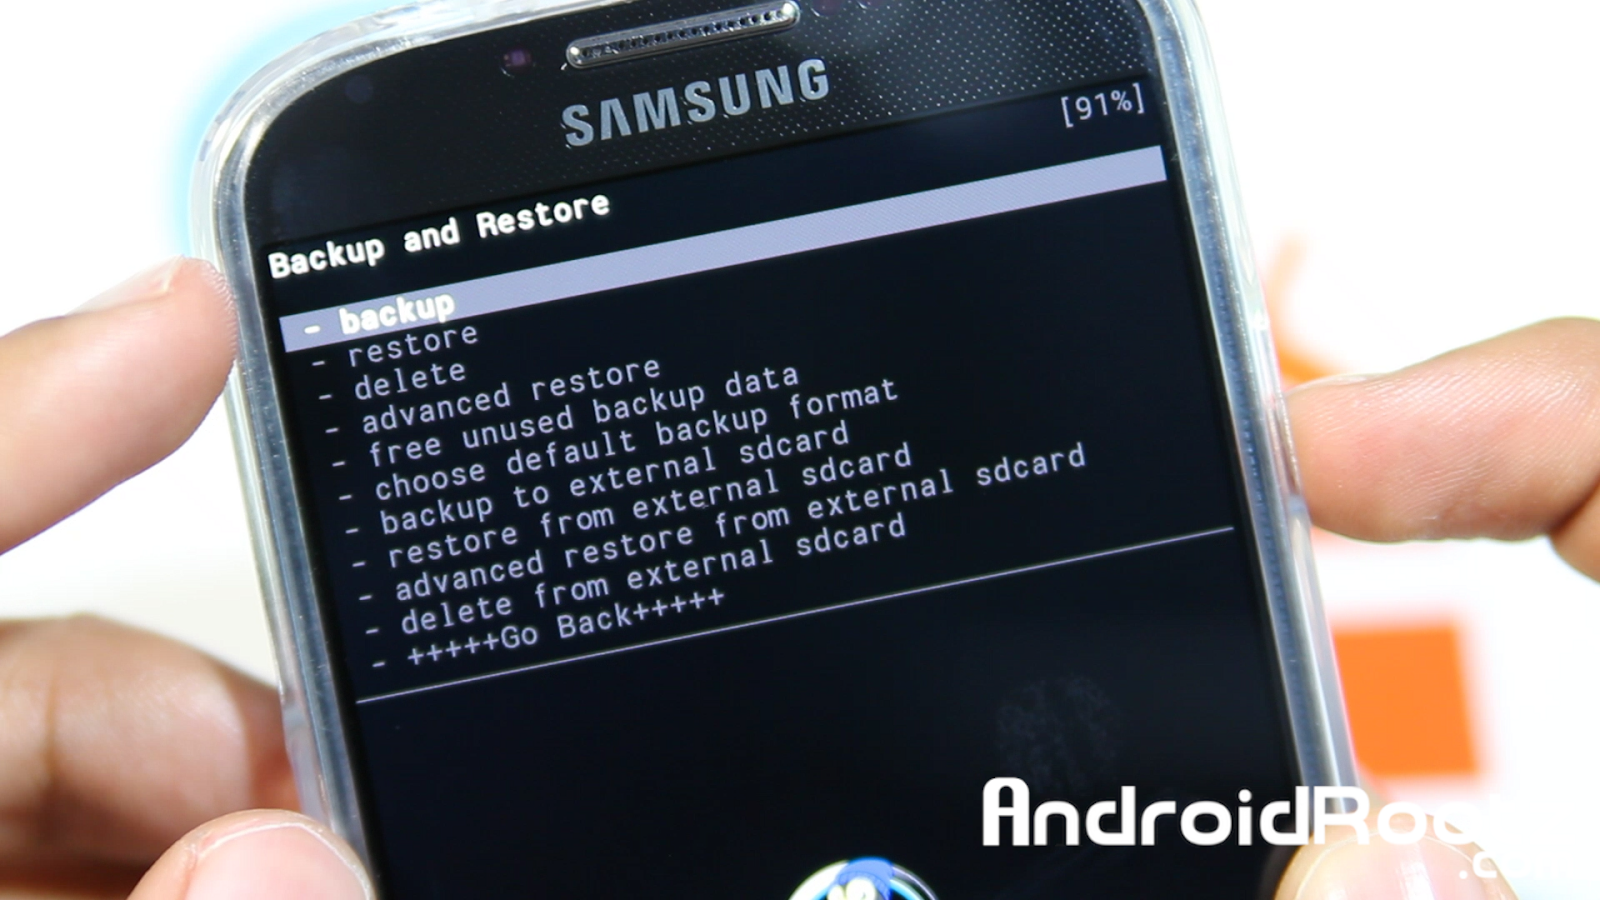 Phone Complete Phone Backup Android how to do a nandroid backup on galaxy s4 and restore rom the will take about 10 minutes complete